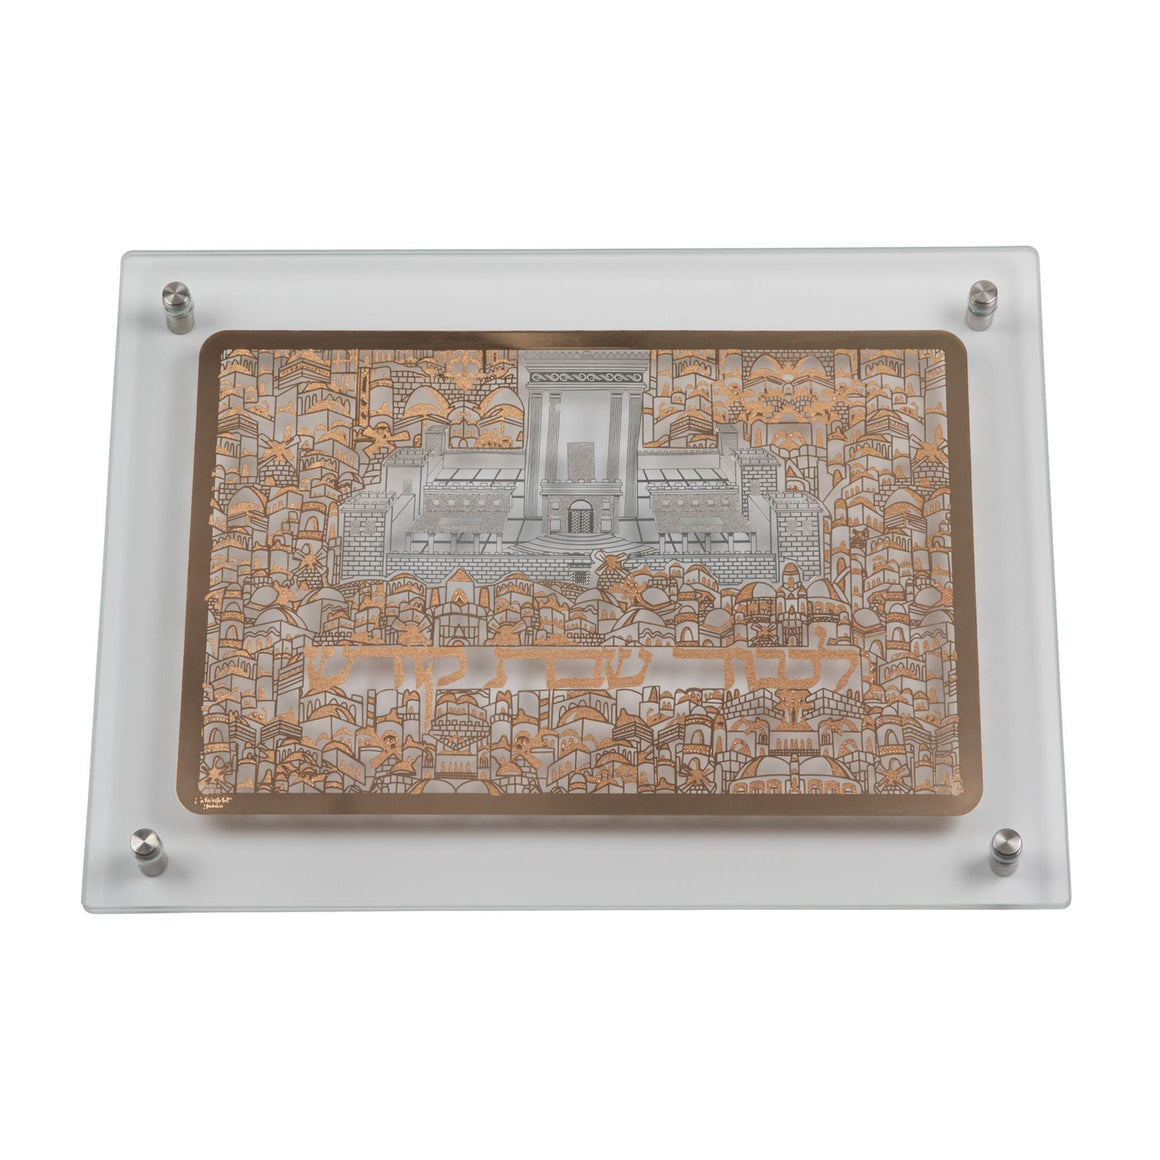 "Glass Combined Challah Board Gold Jerusalem Plate With Silver Beth Hamikdash 15x10.5"" Schonfeld Collection"